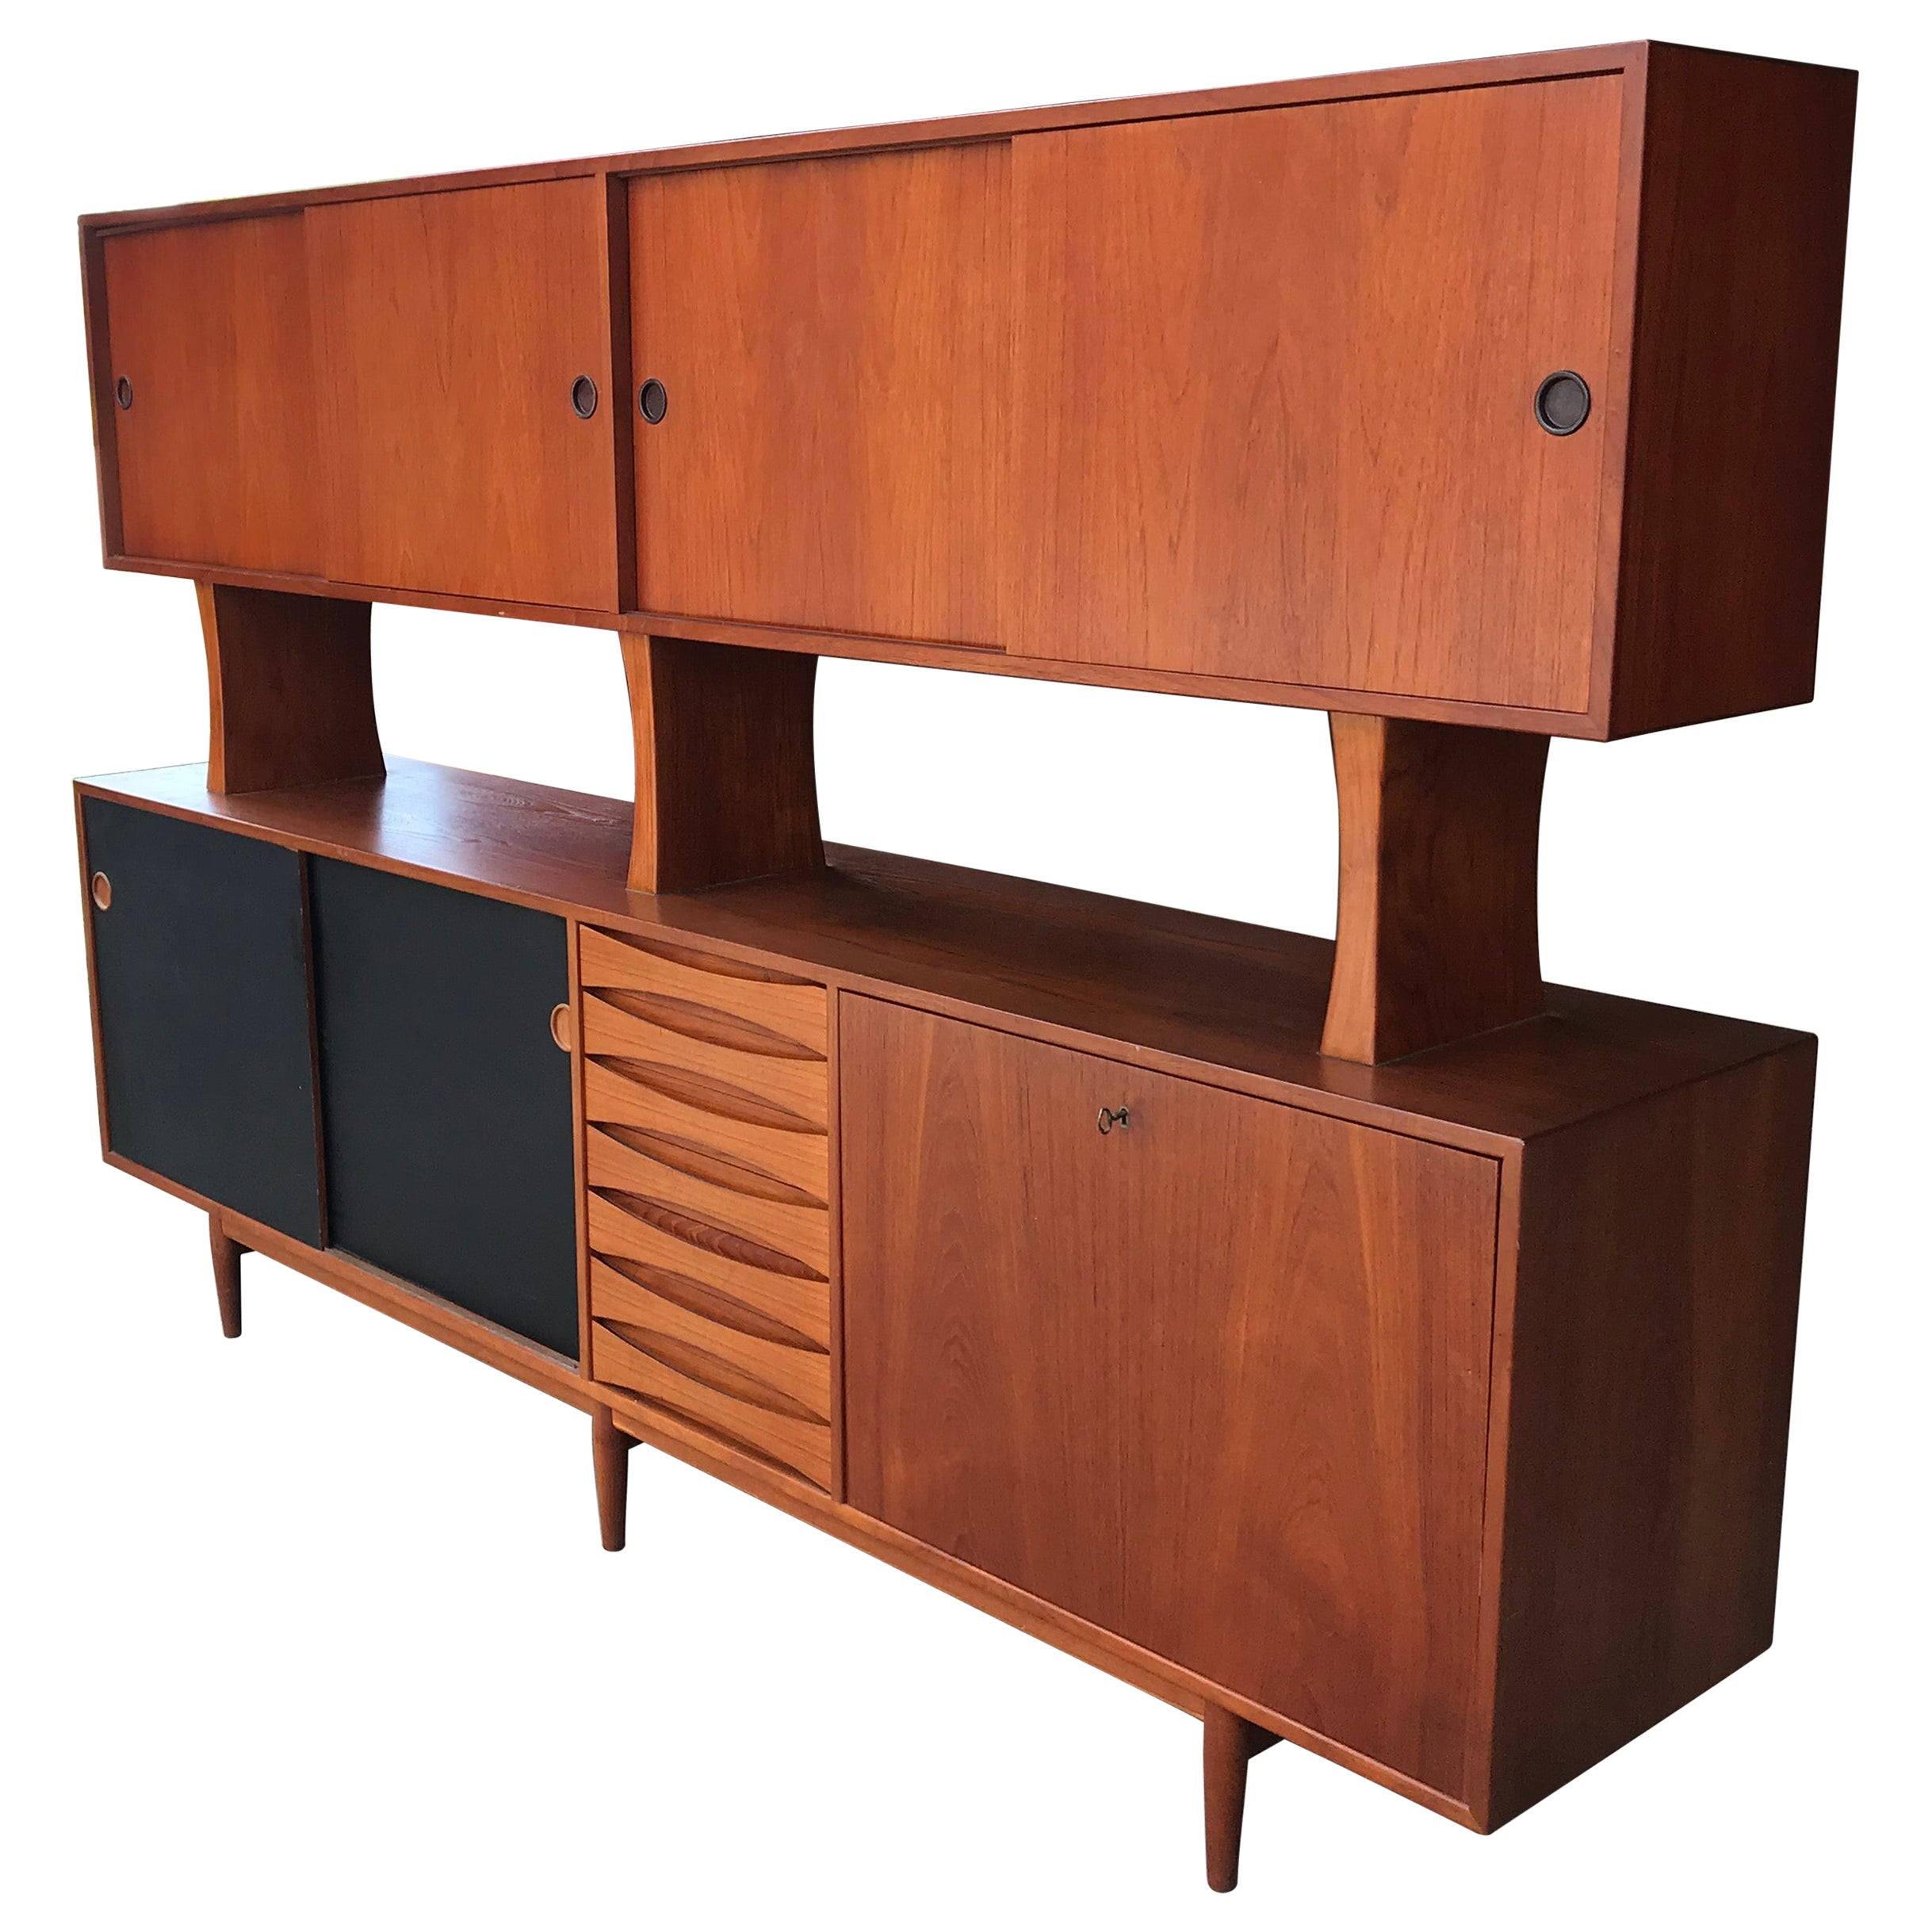 Classic Arne Vodder Sideboard with Top, Model 29A, Reversible Doors, Denmark